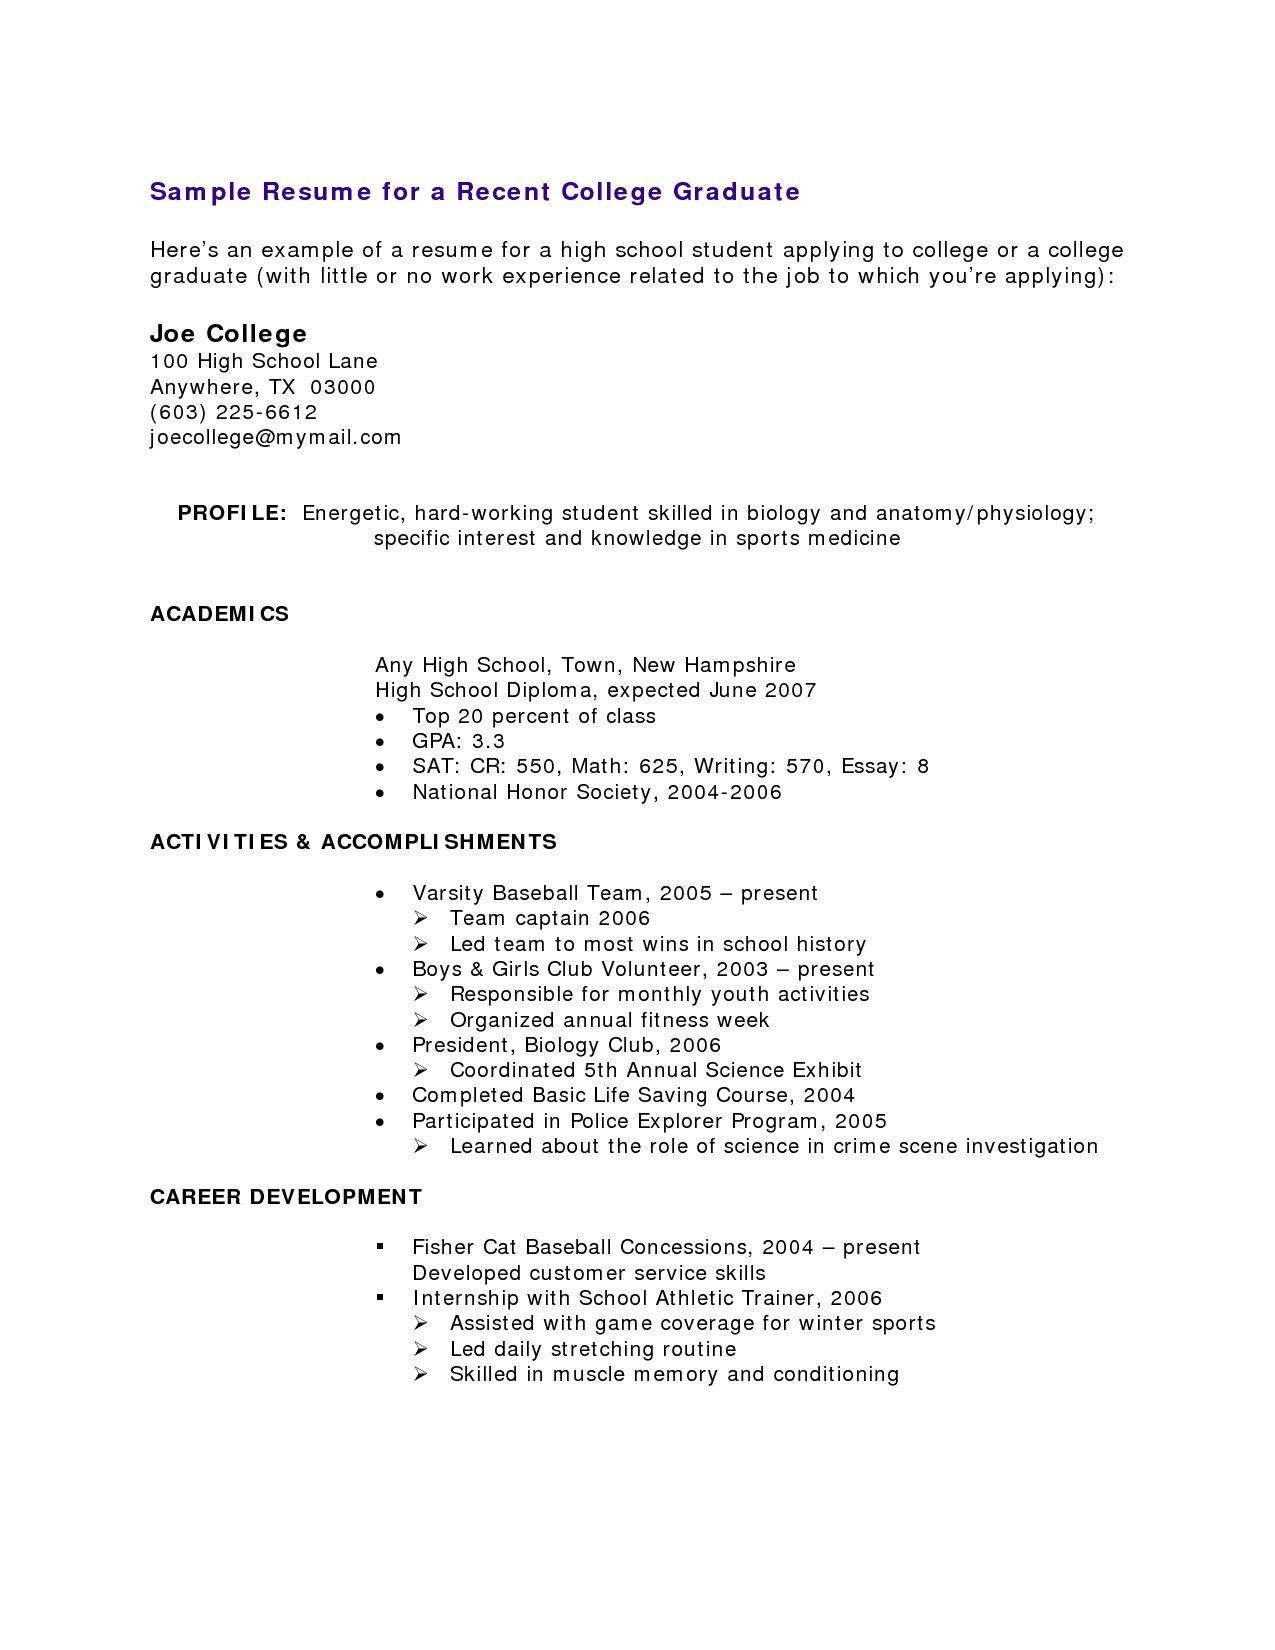 free resume templates no work experience  experience  freeresumetemplates  resume  templates